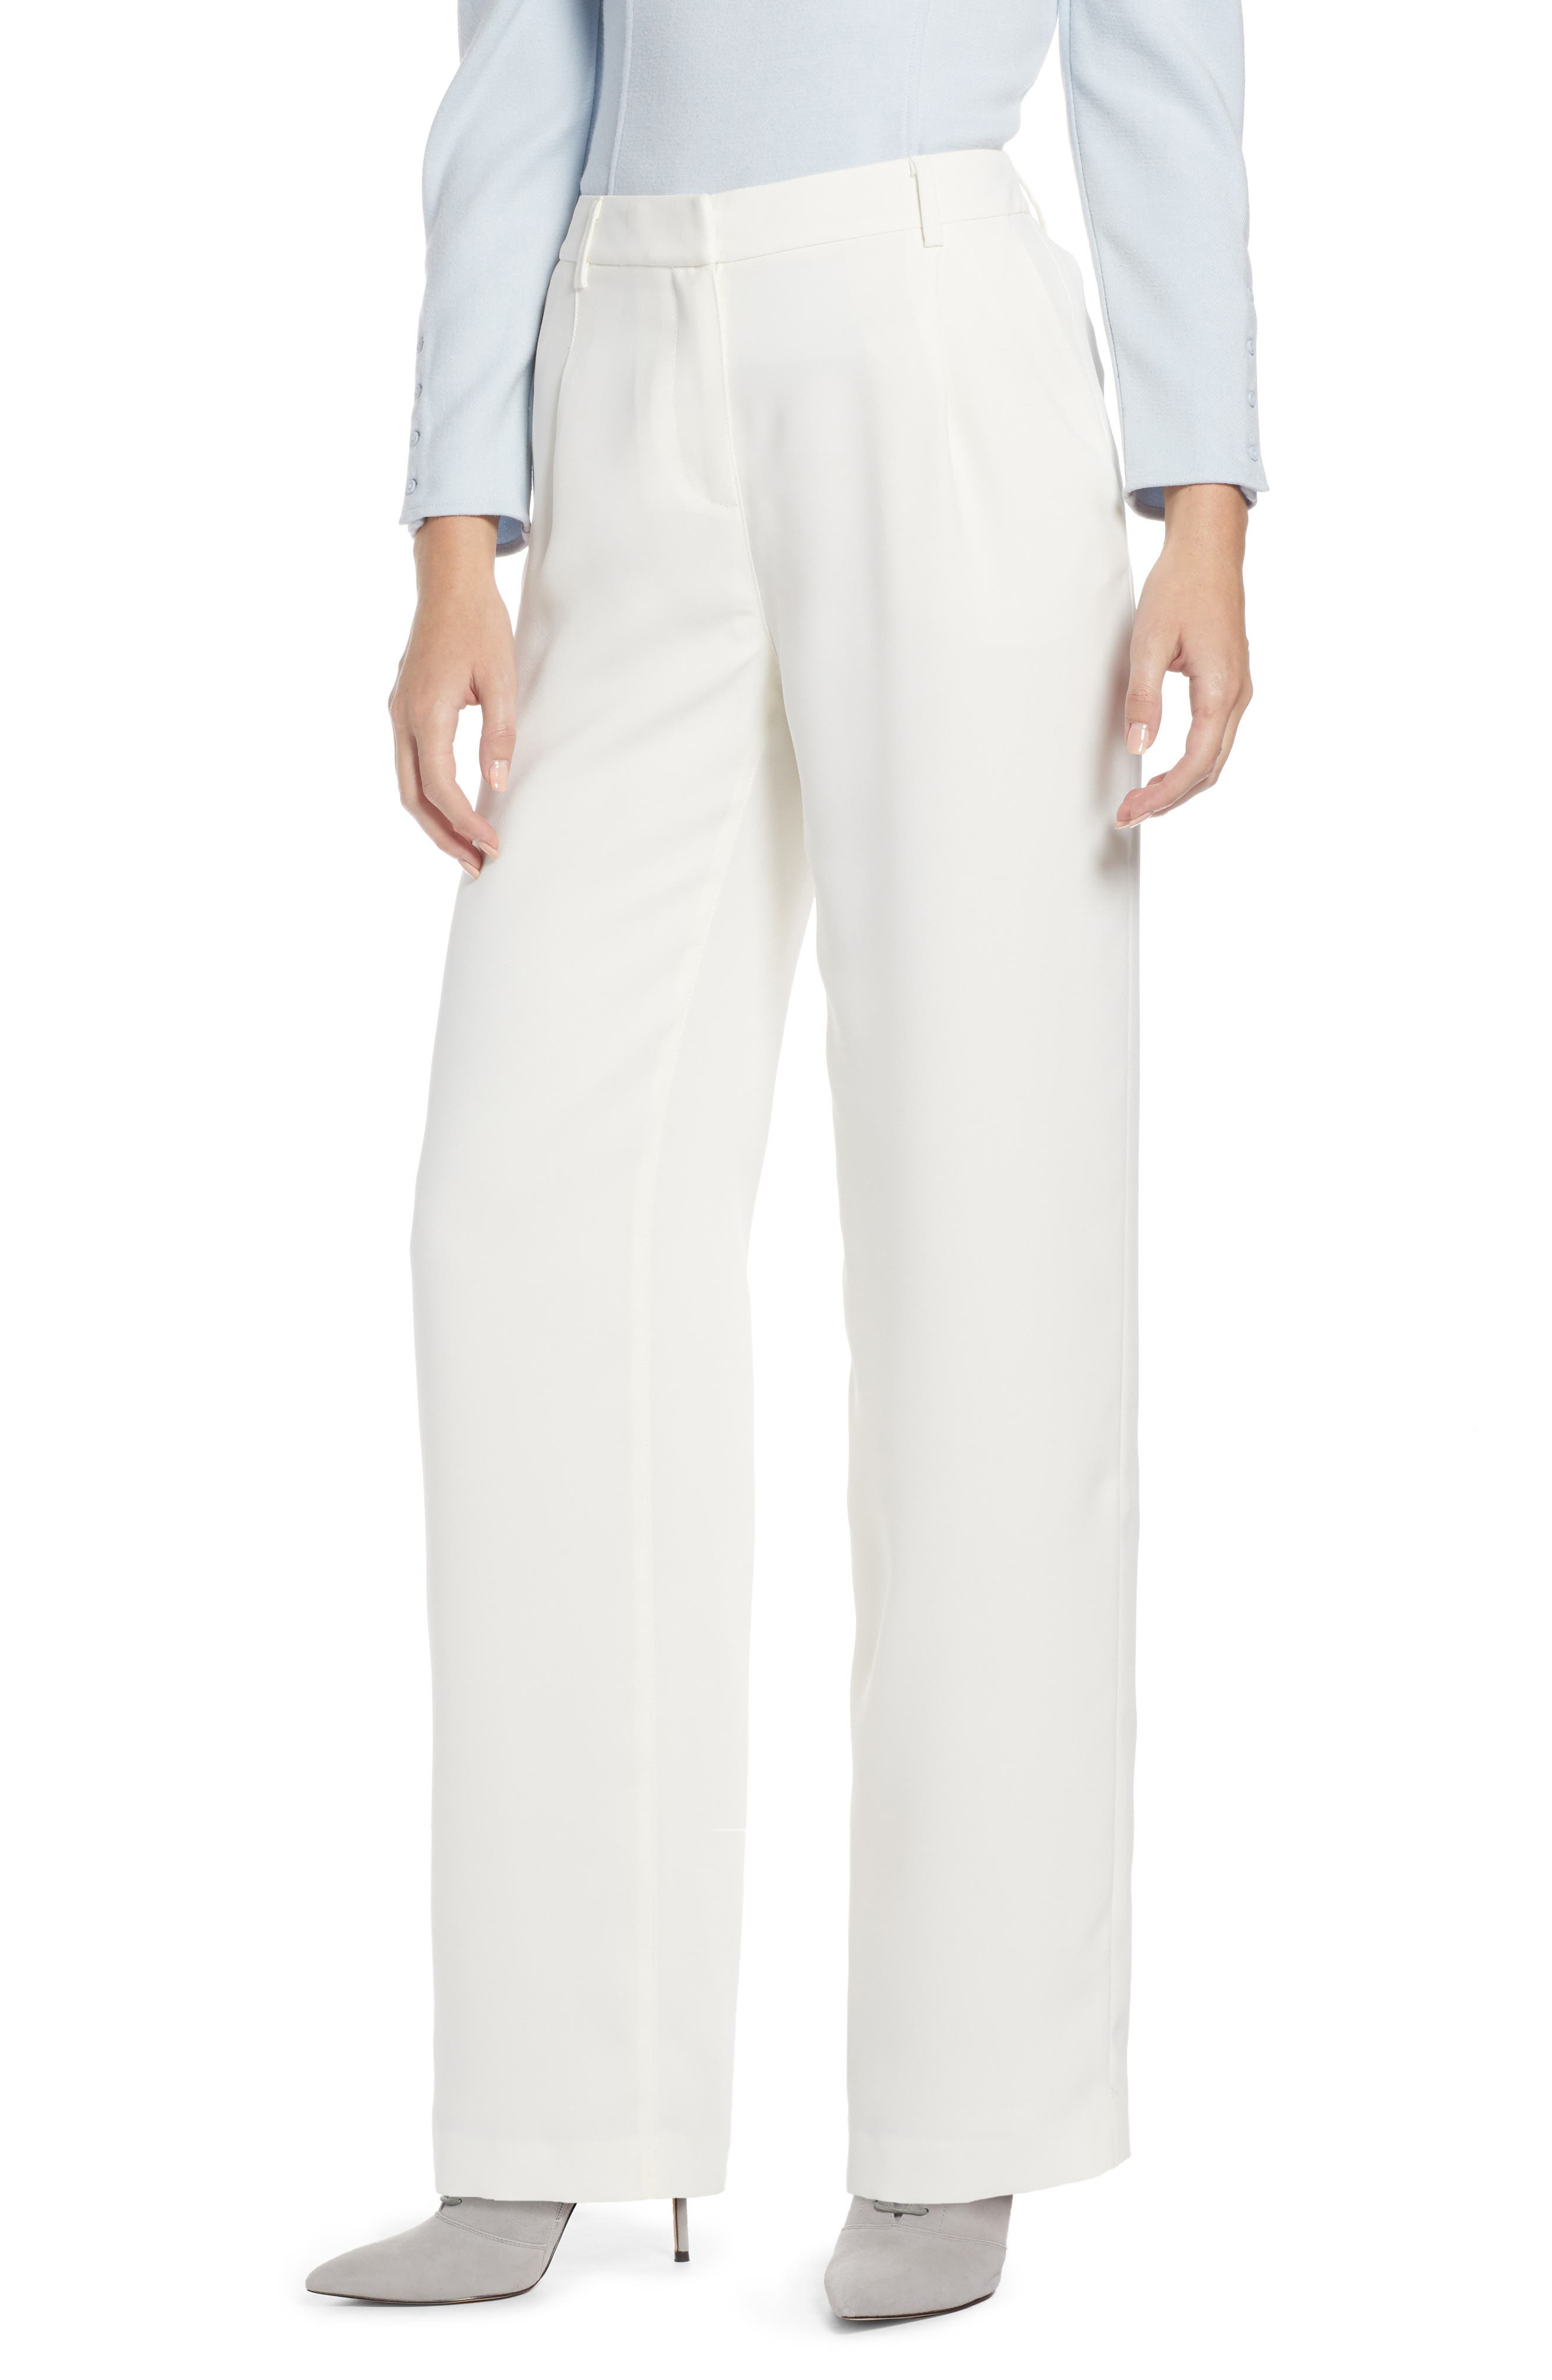 SOMETHING NAVY, Pleated Wide Leg Trousers, Main thumbnail 1, color, IVORY